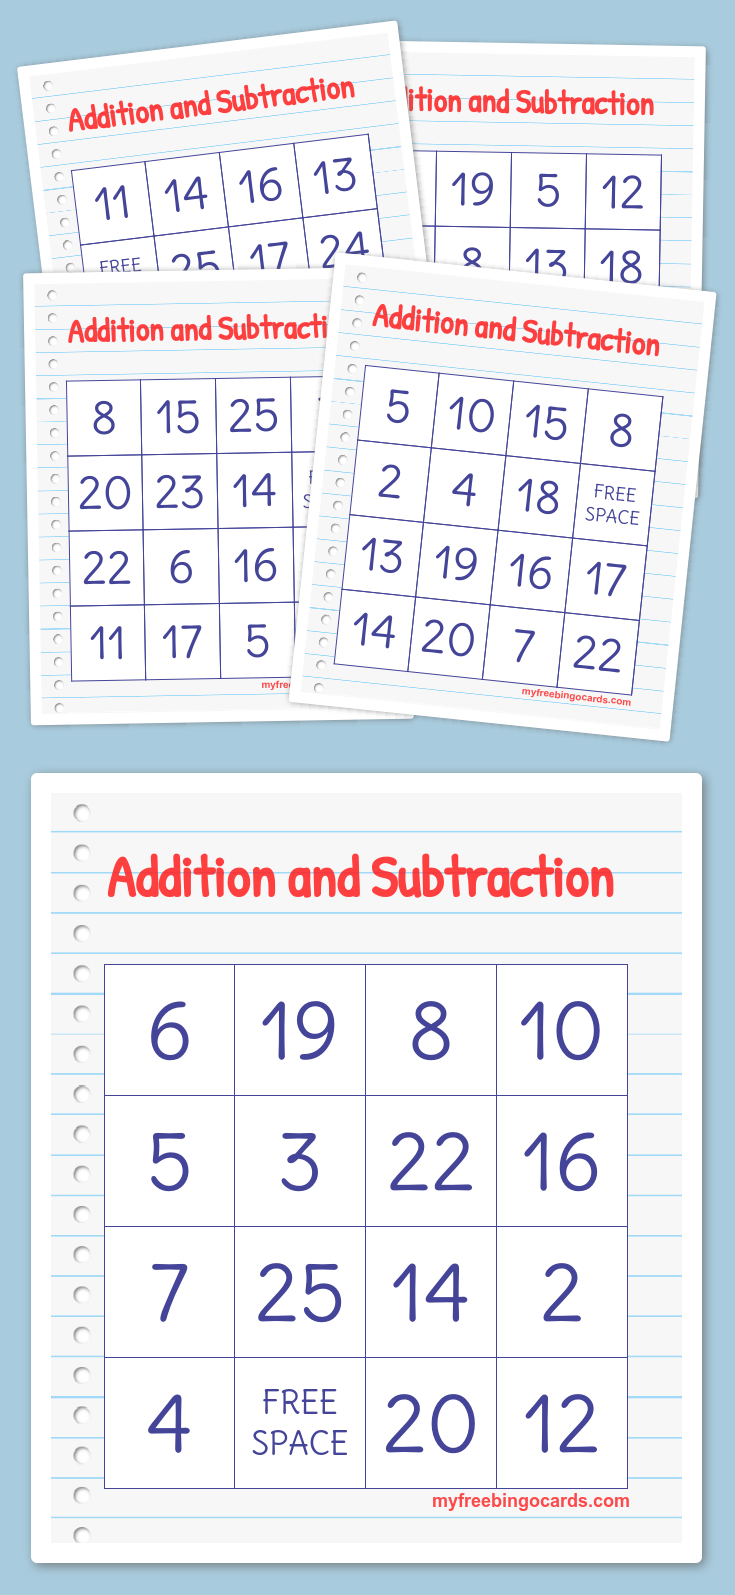 Addition And Subtraction Bingo | Free Printable Bingo Cards